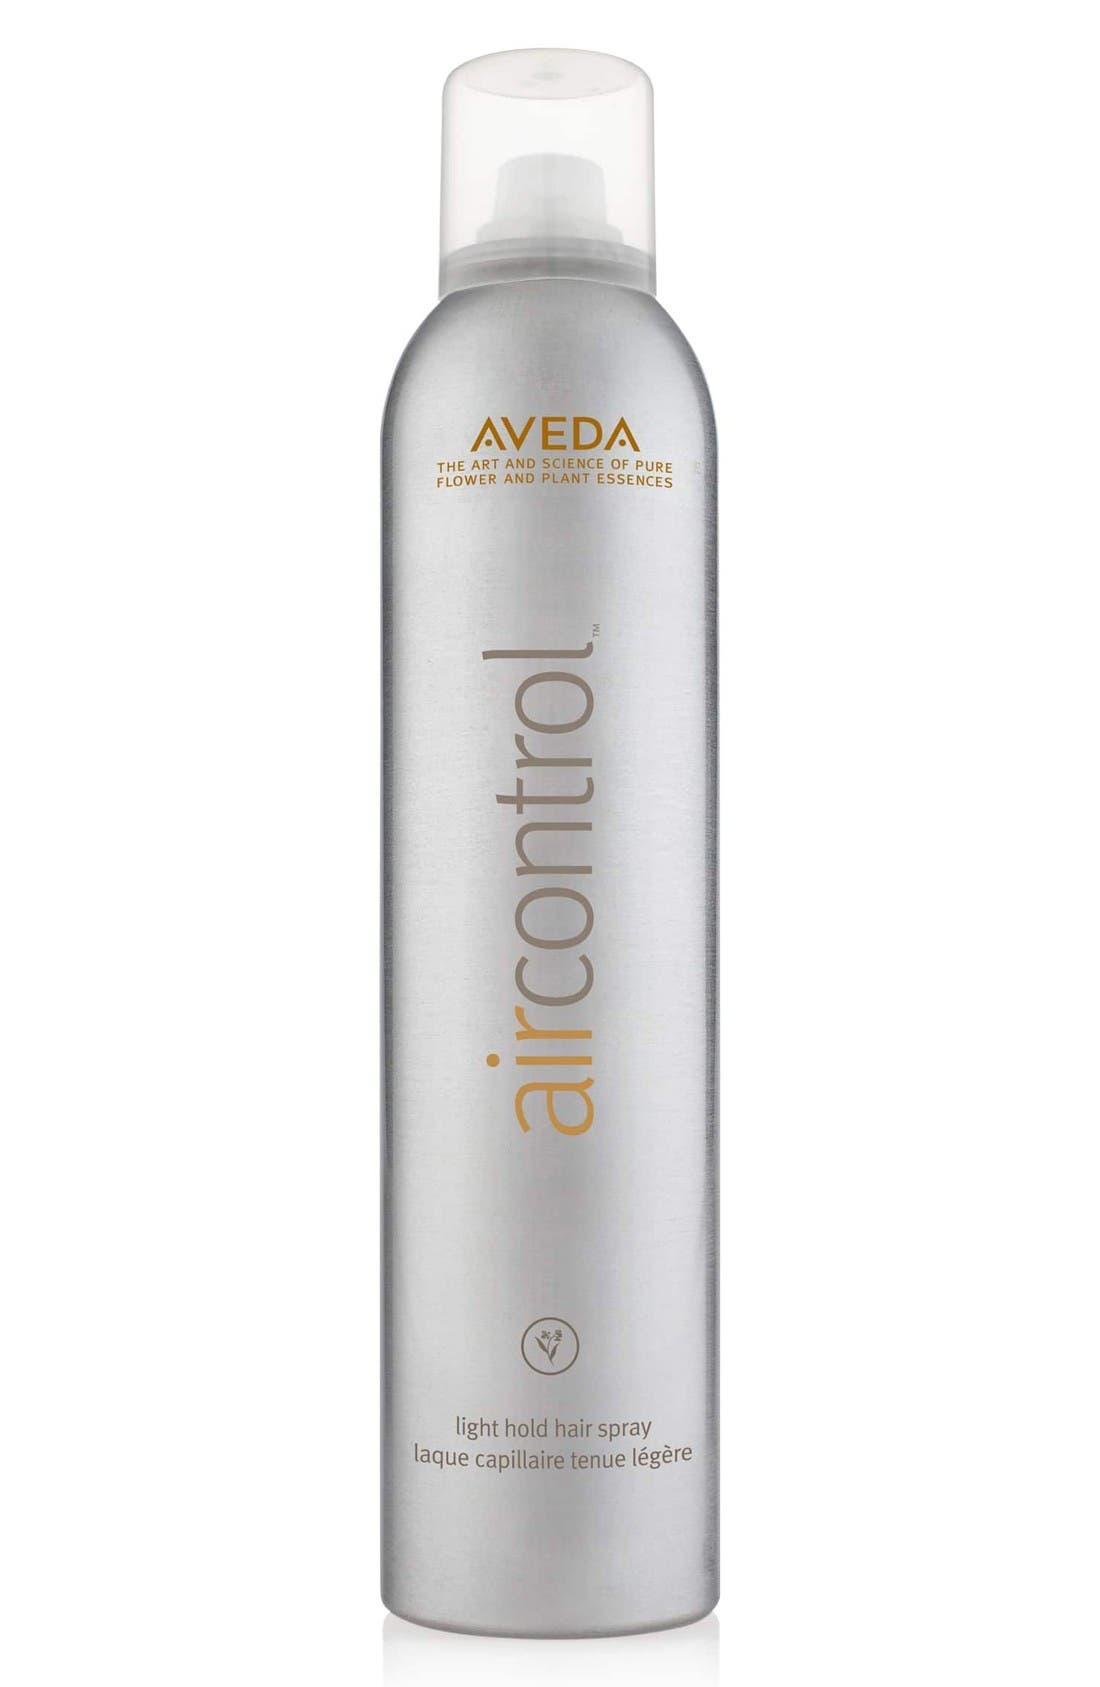 Aveda air control™ Hair Spray